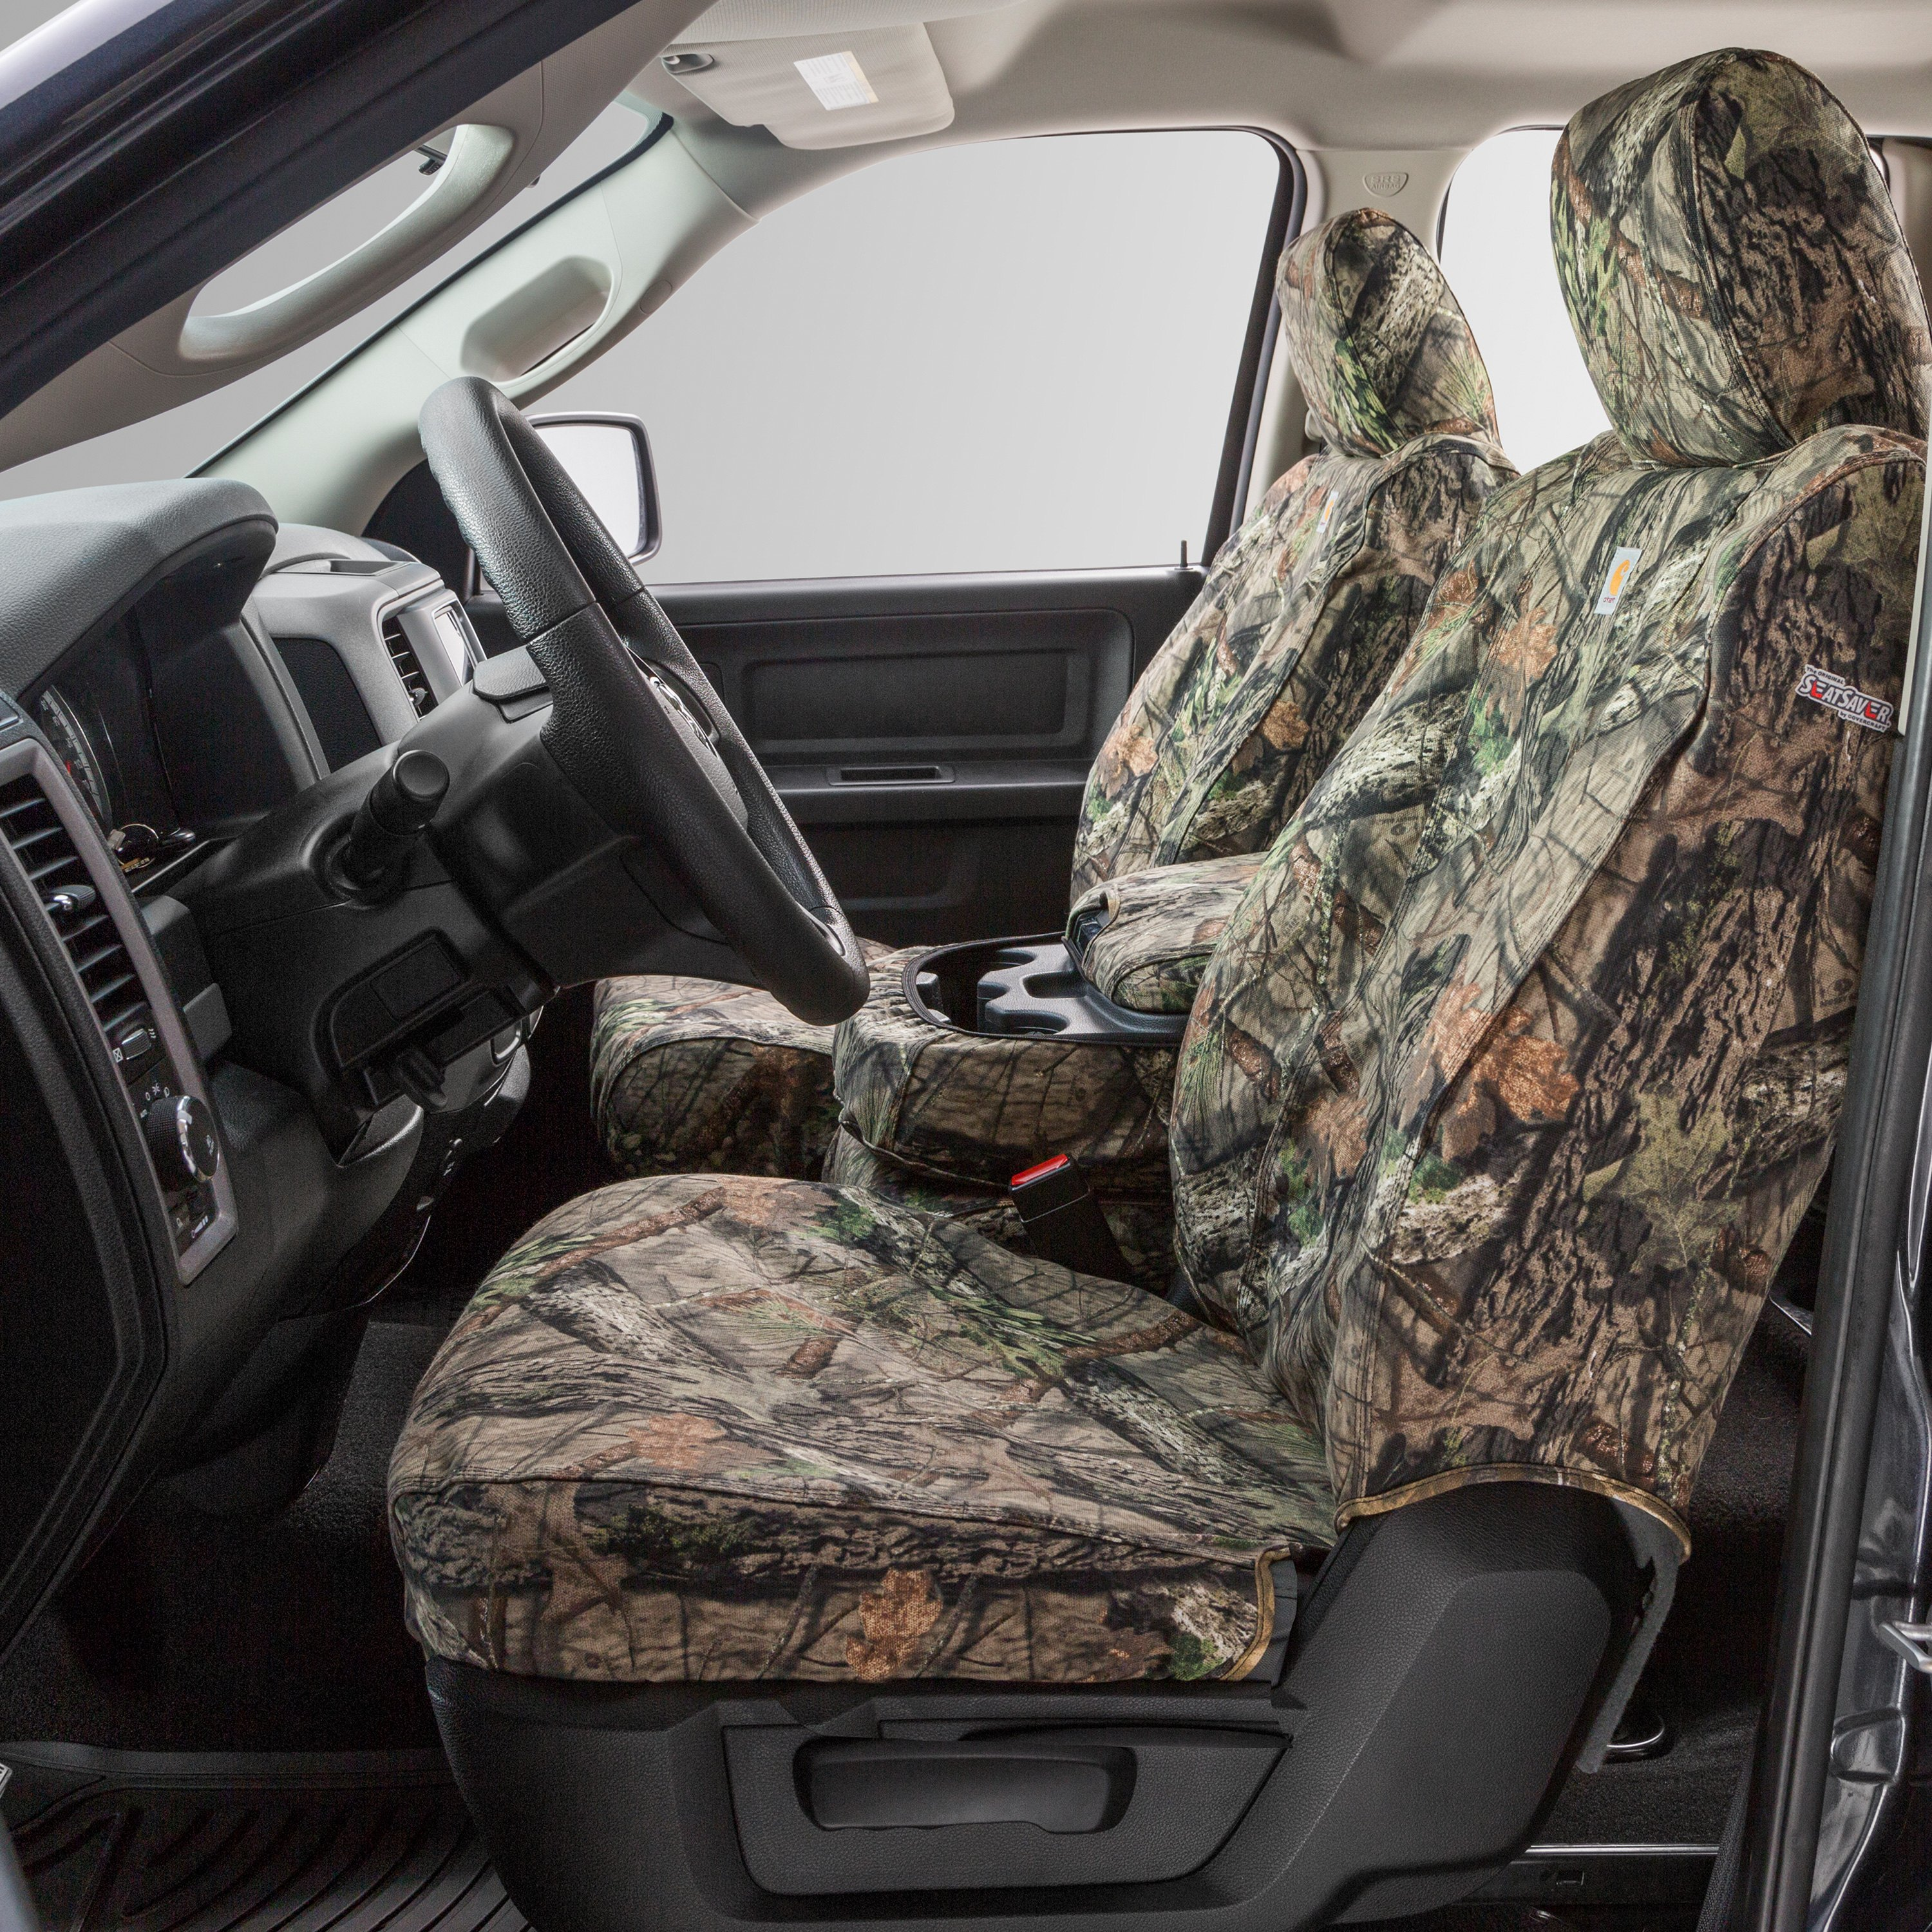 front floors car seat mats awesome bonjour tower camo of paris and floor eiffel pink